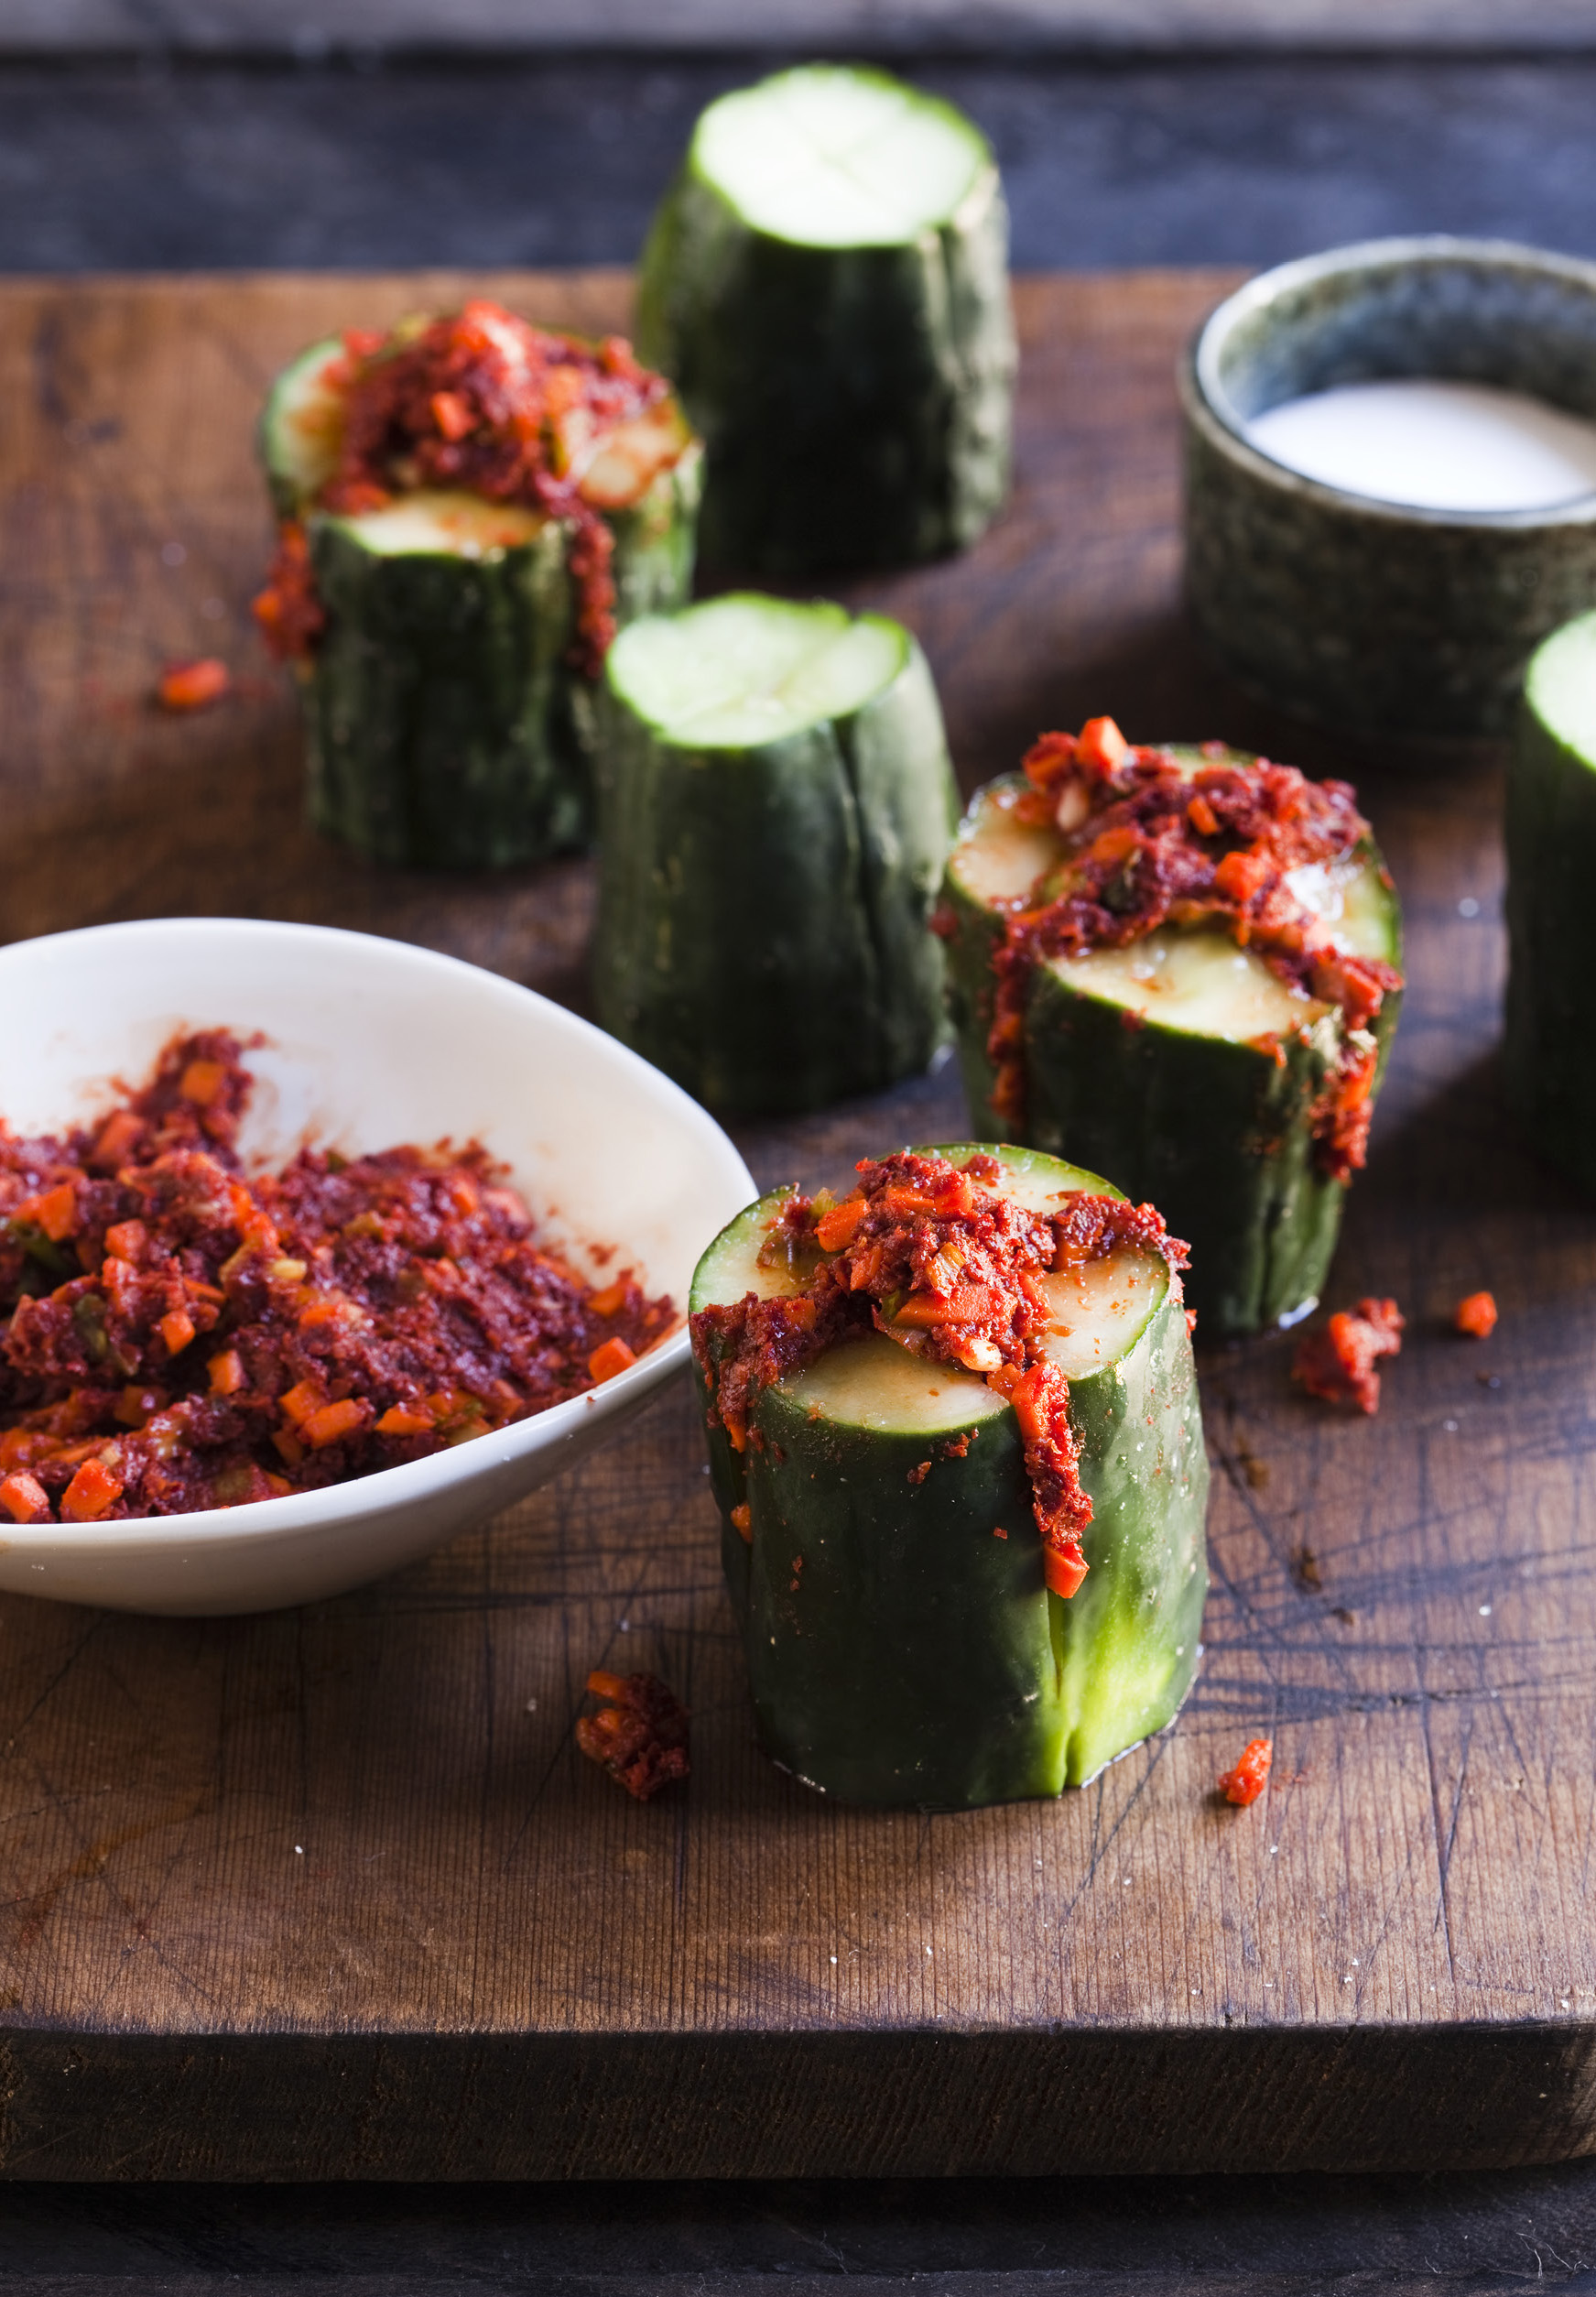 Stuffed Cucumber Kimchi from Asian Pickles Korea